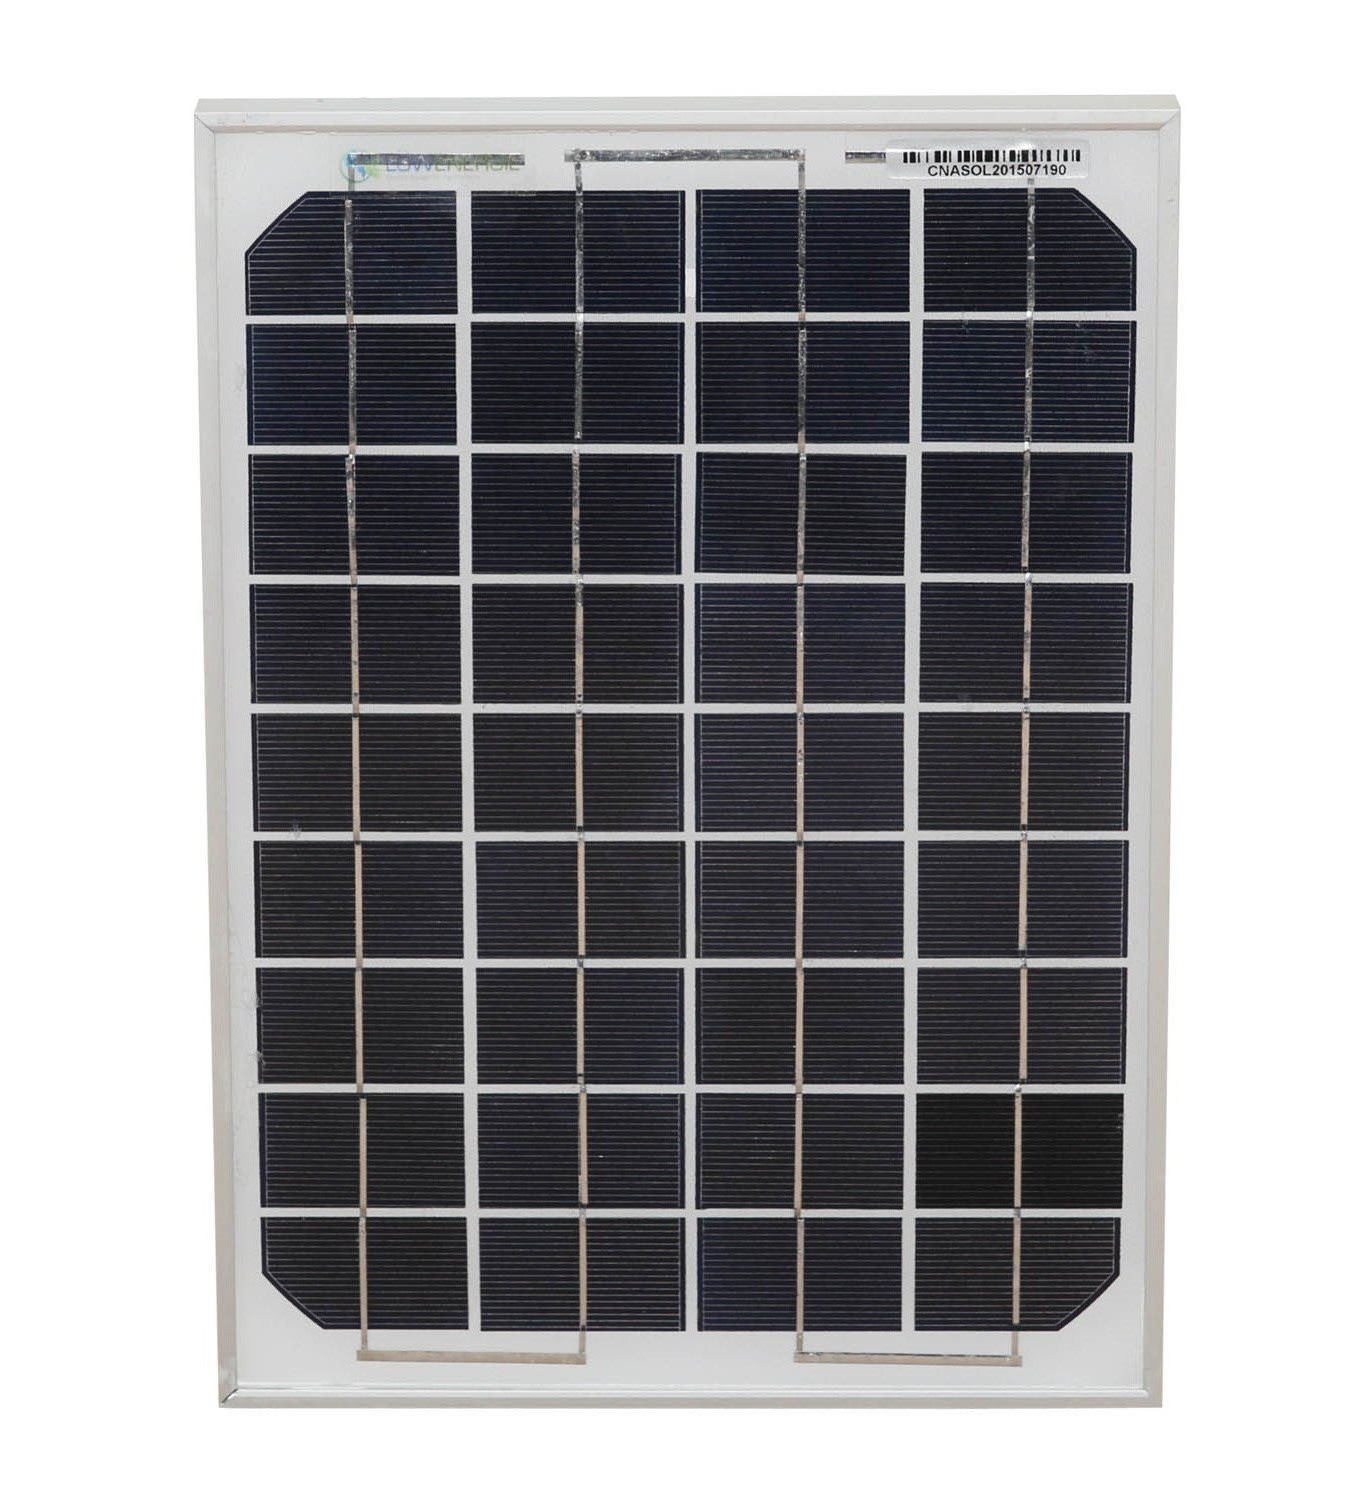 10w Mono Solar Panel PV Photo-voltaic with 4 metre cable & Crocodile clips - ideal for boat, caravan Lowenergie